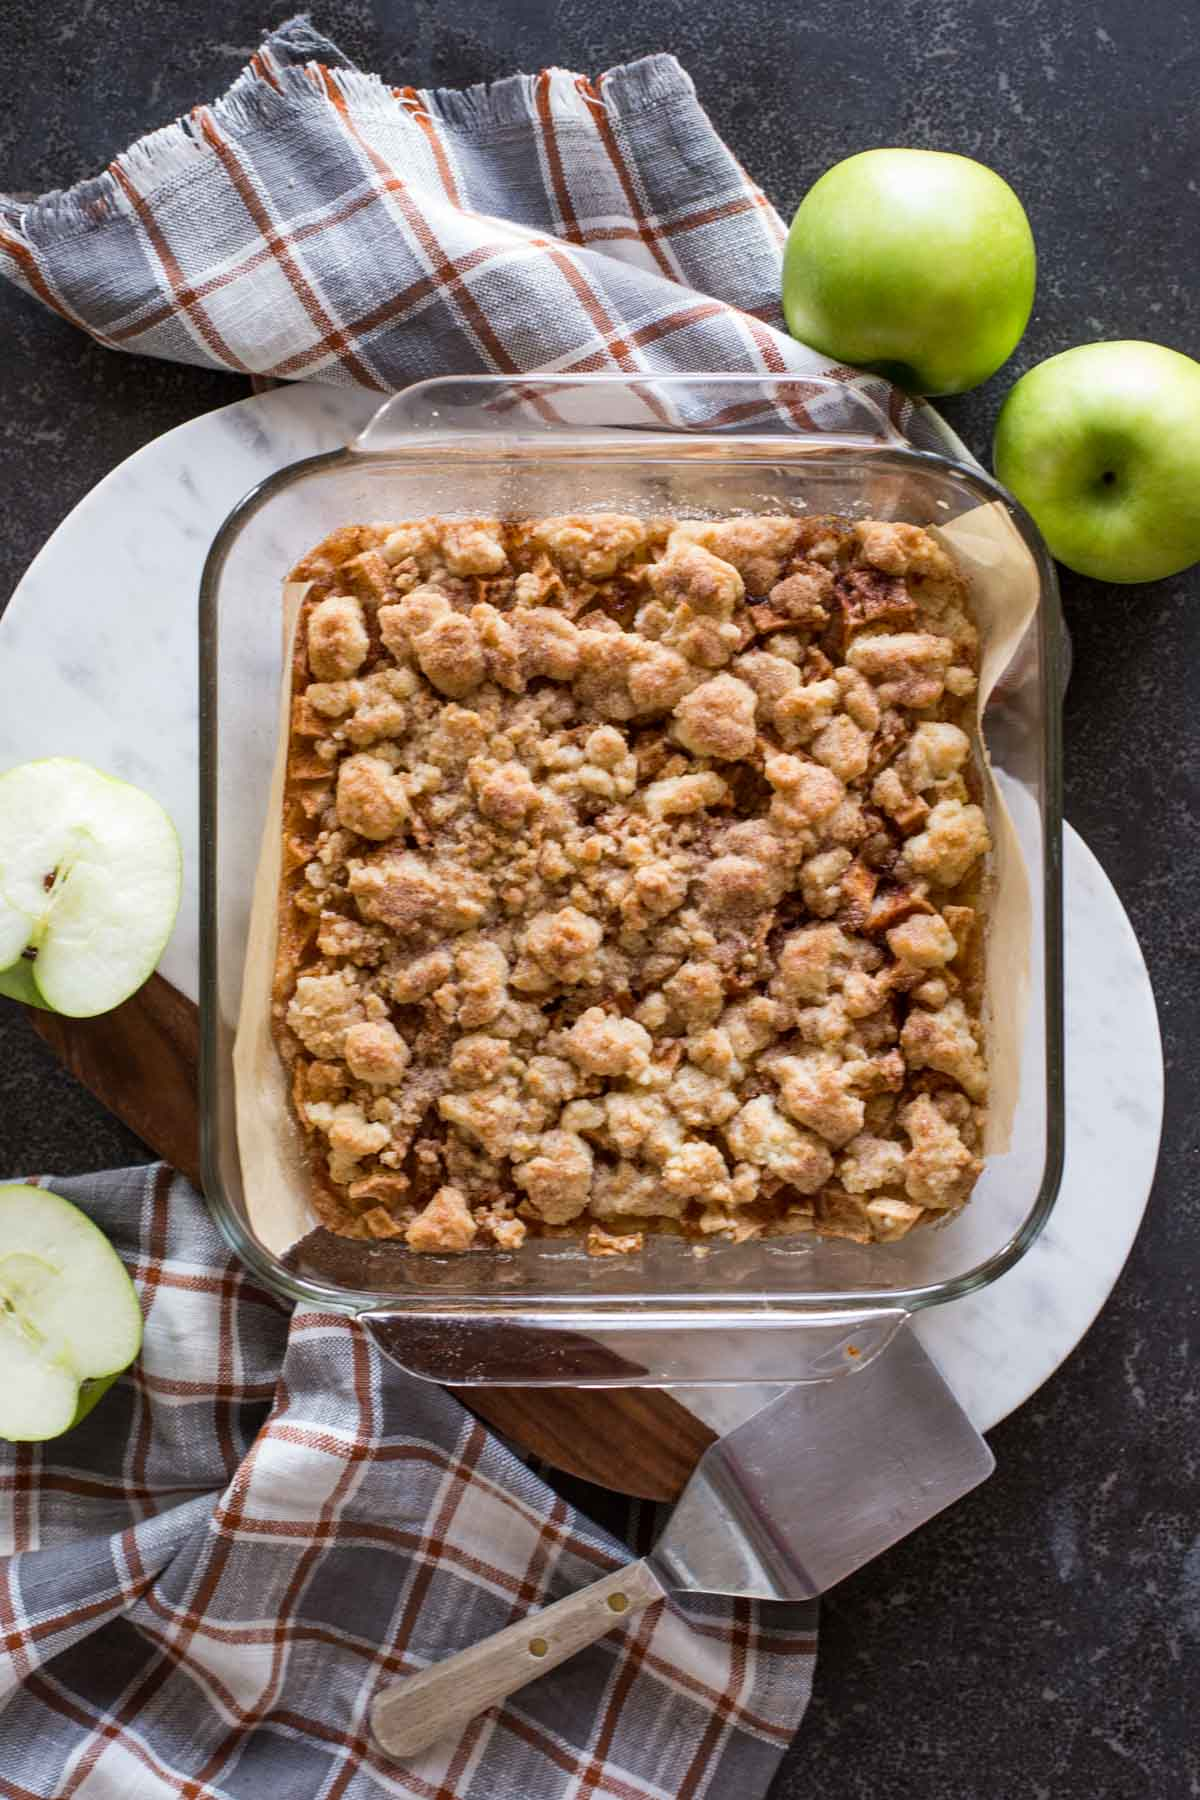 Apple Pie Crumb Bars in a square baking dish, with whole and halved apples next to it, as well as a serving spatula.